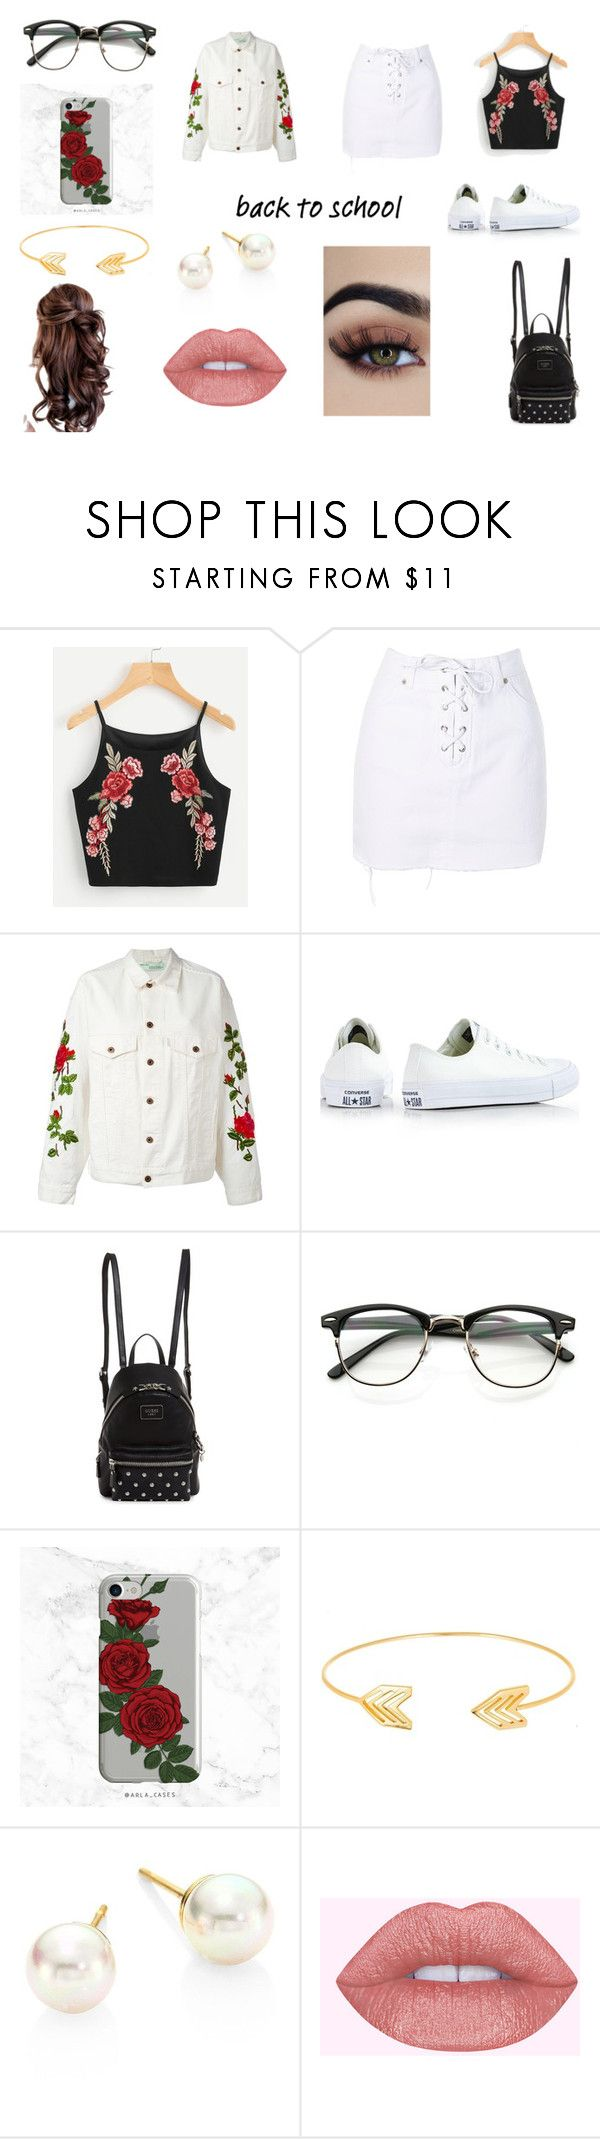 """""""Back to school"""" by mariavv28 ❤ liked on Polyvore featuring Topshop, Off-White, Converse, GUESS, Lord & Taylor and Majorica"""